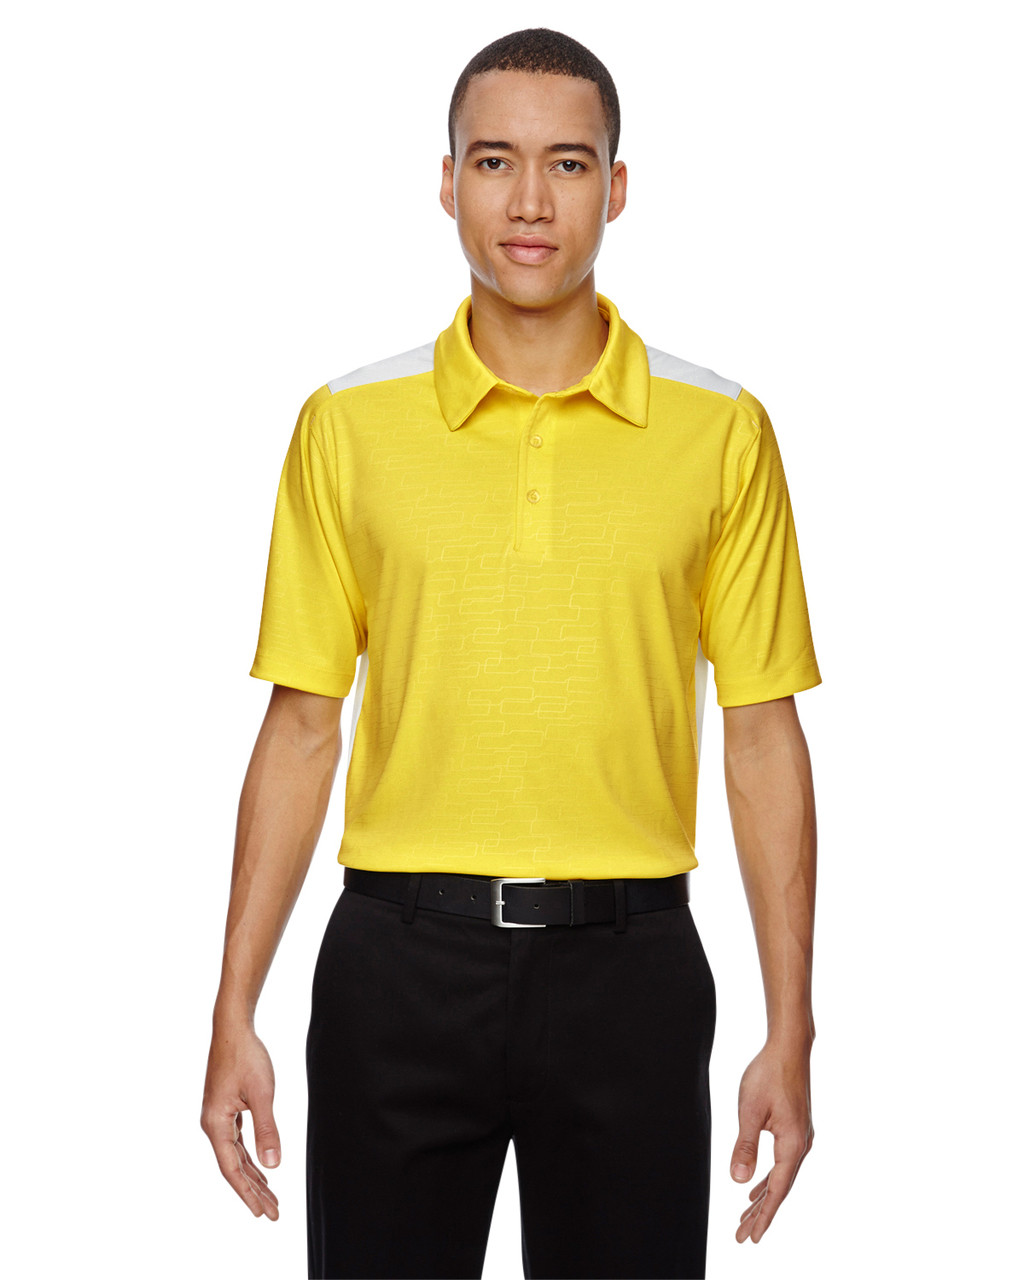 Banana Yellow - 88691 North End Sport Red Reflex UTK Performance Embossed Print Polo Shirt